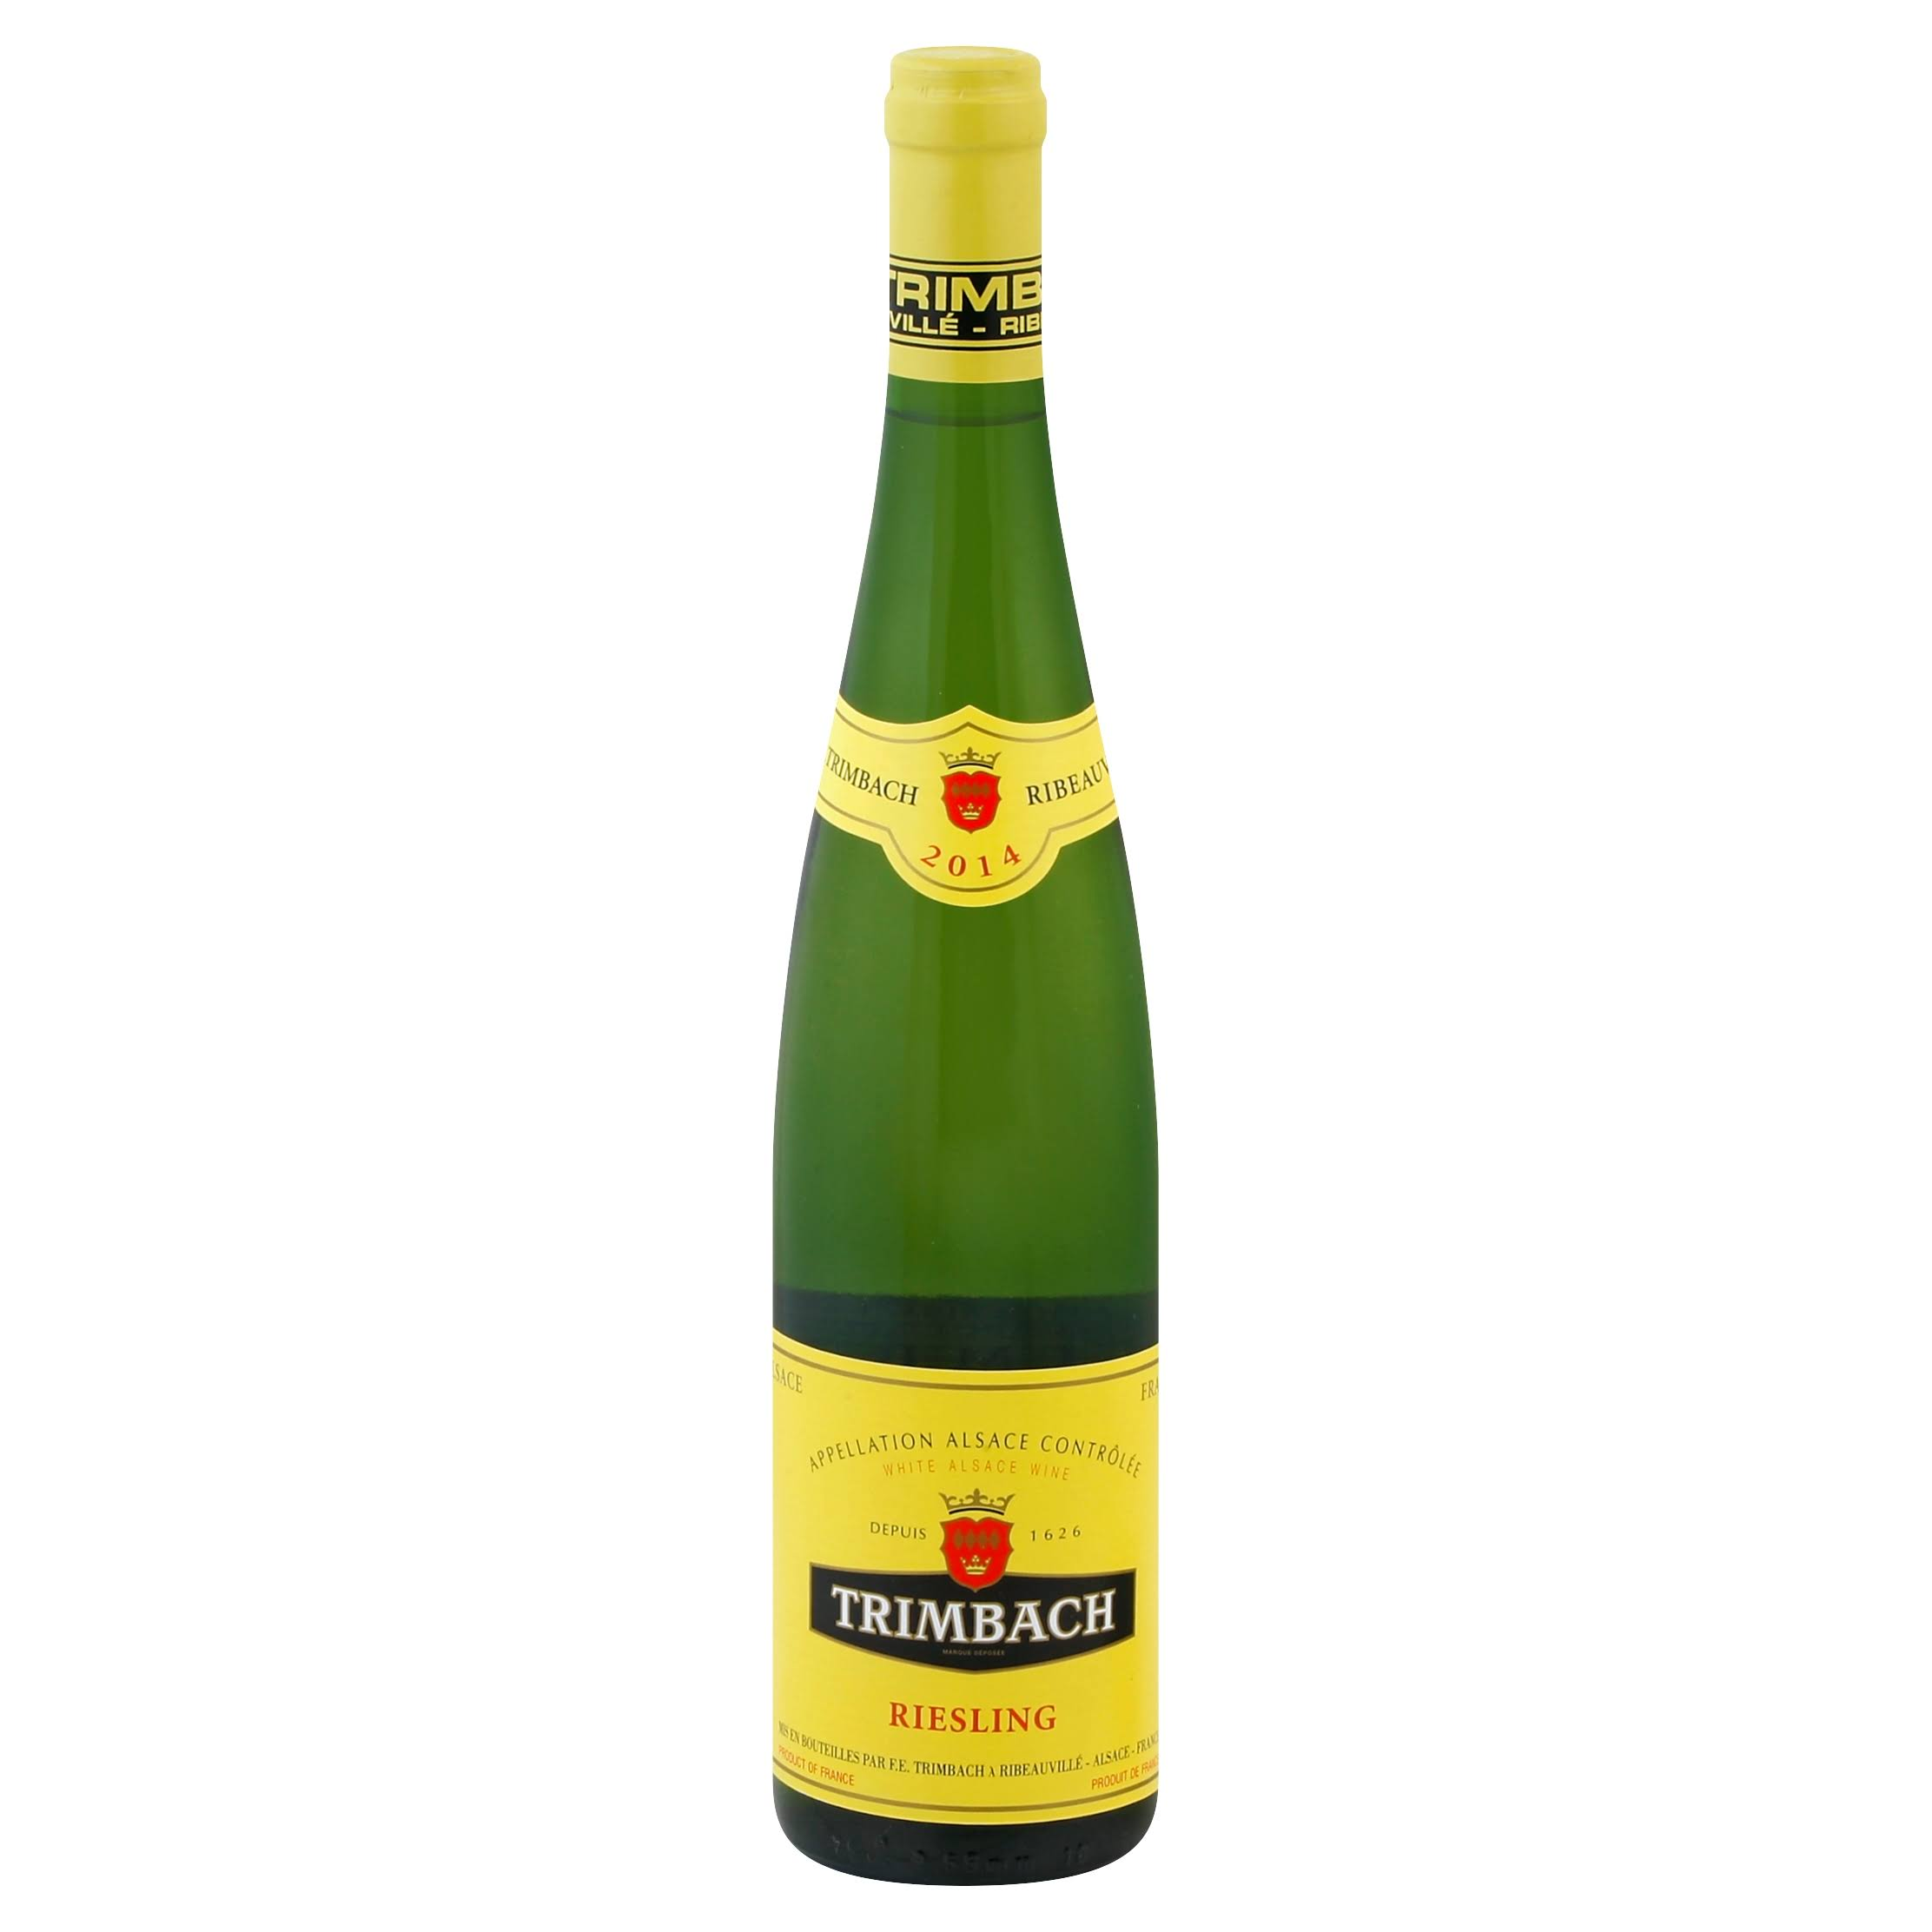 Trimbach Riesling Alsace, France (Vintage Varies) - 750 ml bottle